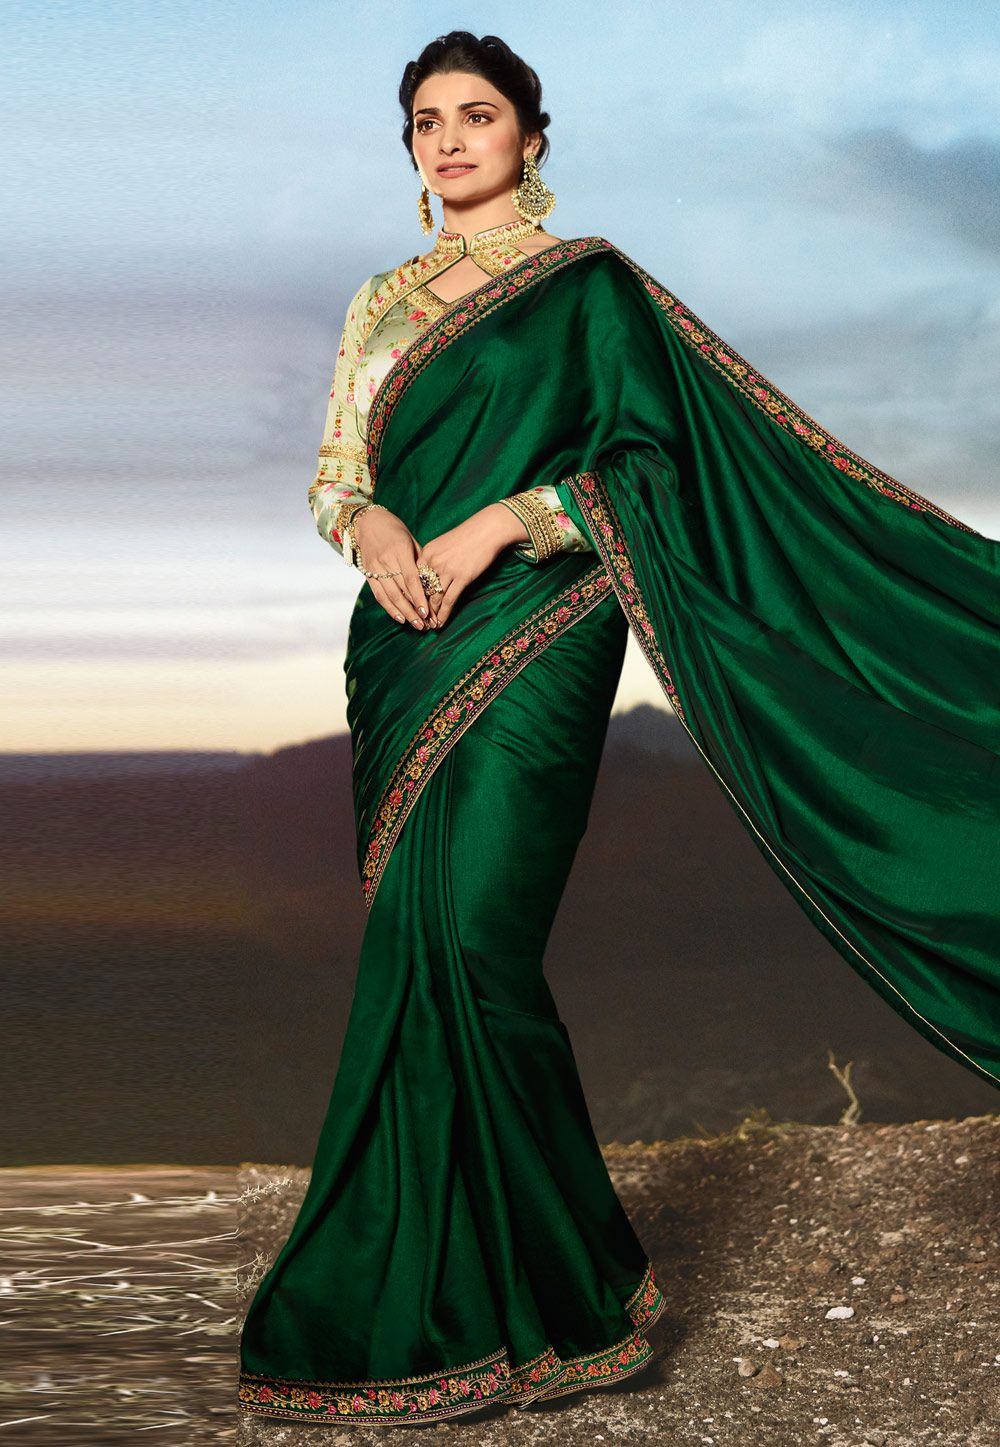 5b32d0b321ea9d Buy Prachi Desai Green Silk Party Wear Saree 155421 with blouse online at  lowest price from vast collection of sarees at Indianclothstore.com.